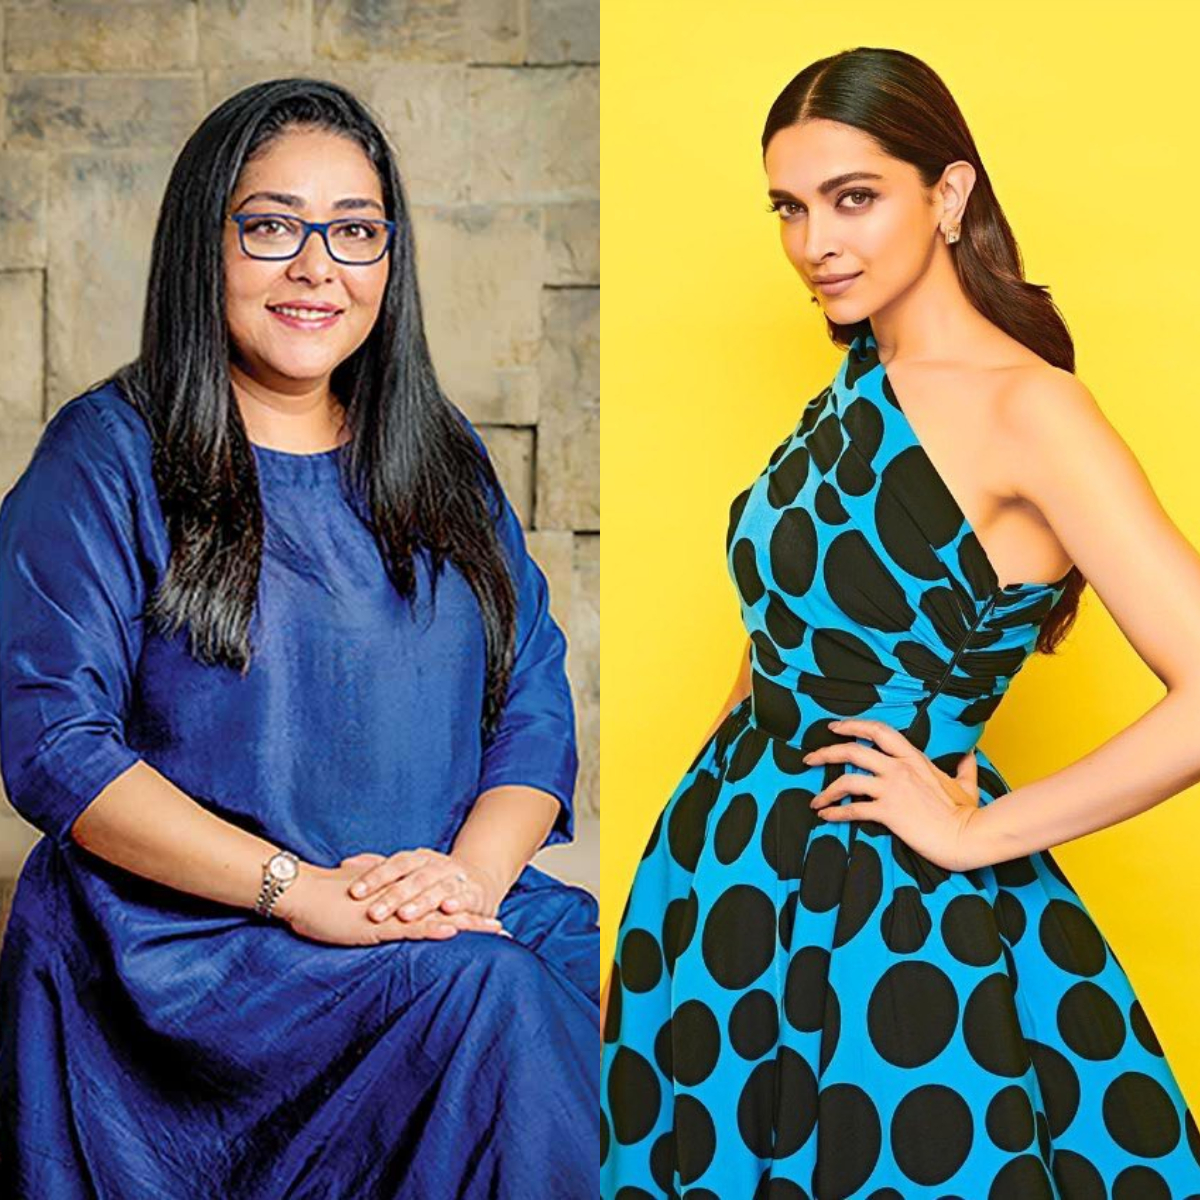 Meghna Gulzar: Deepika Padukone is coming from 300cr films & if she was chasing that she wouldn't do Chhapaak